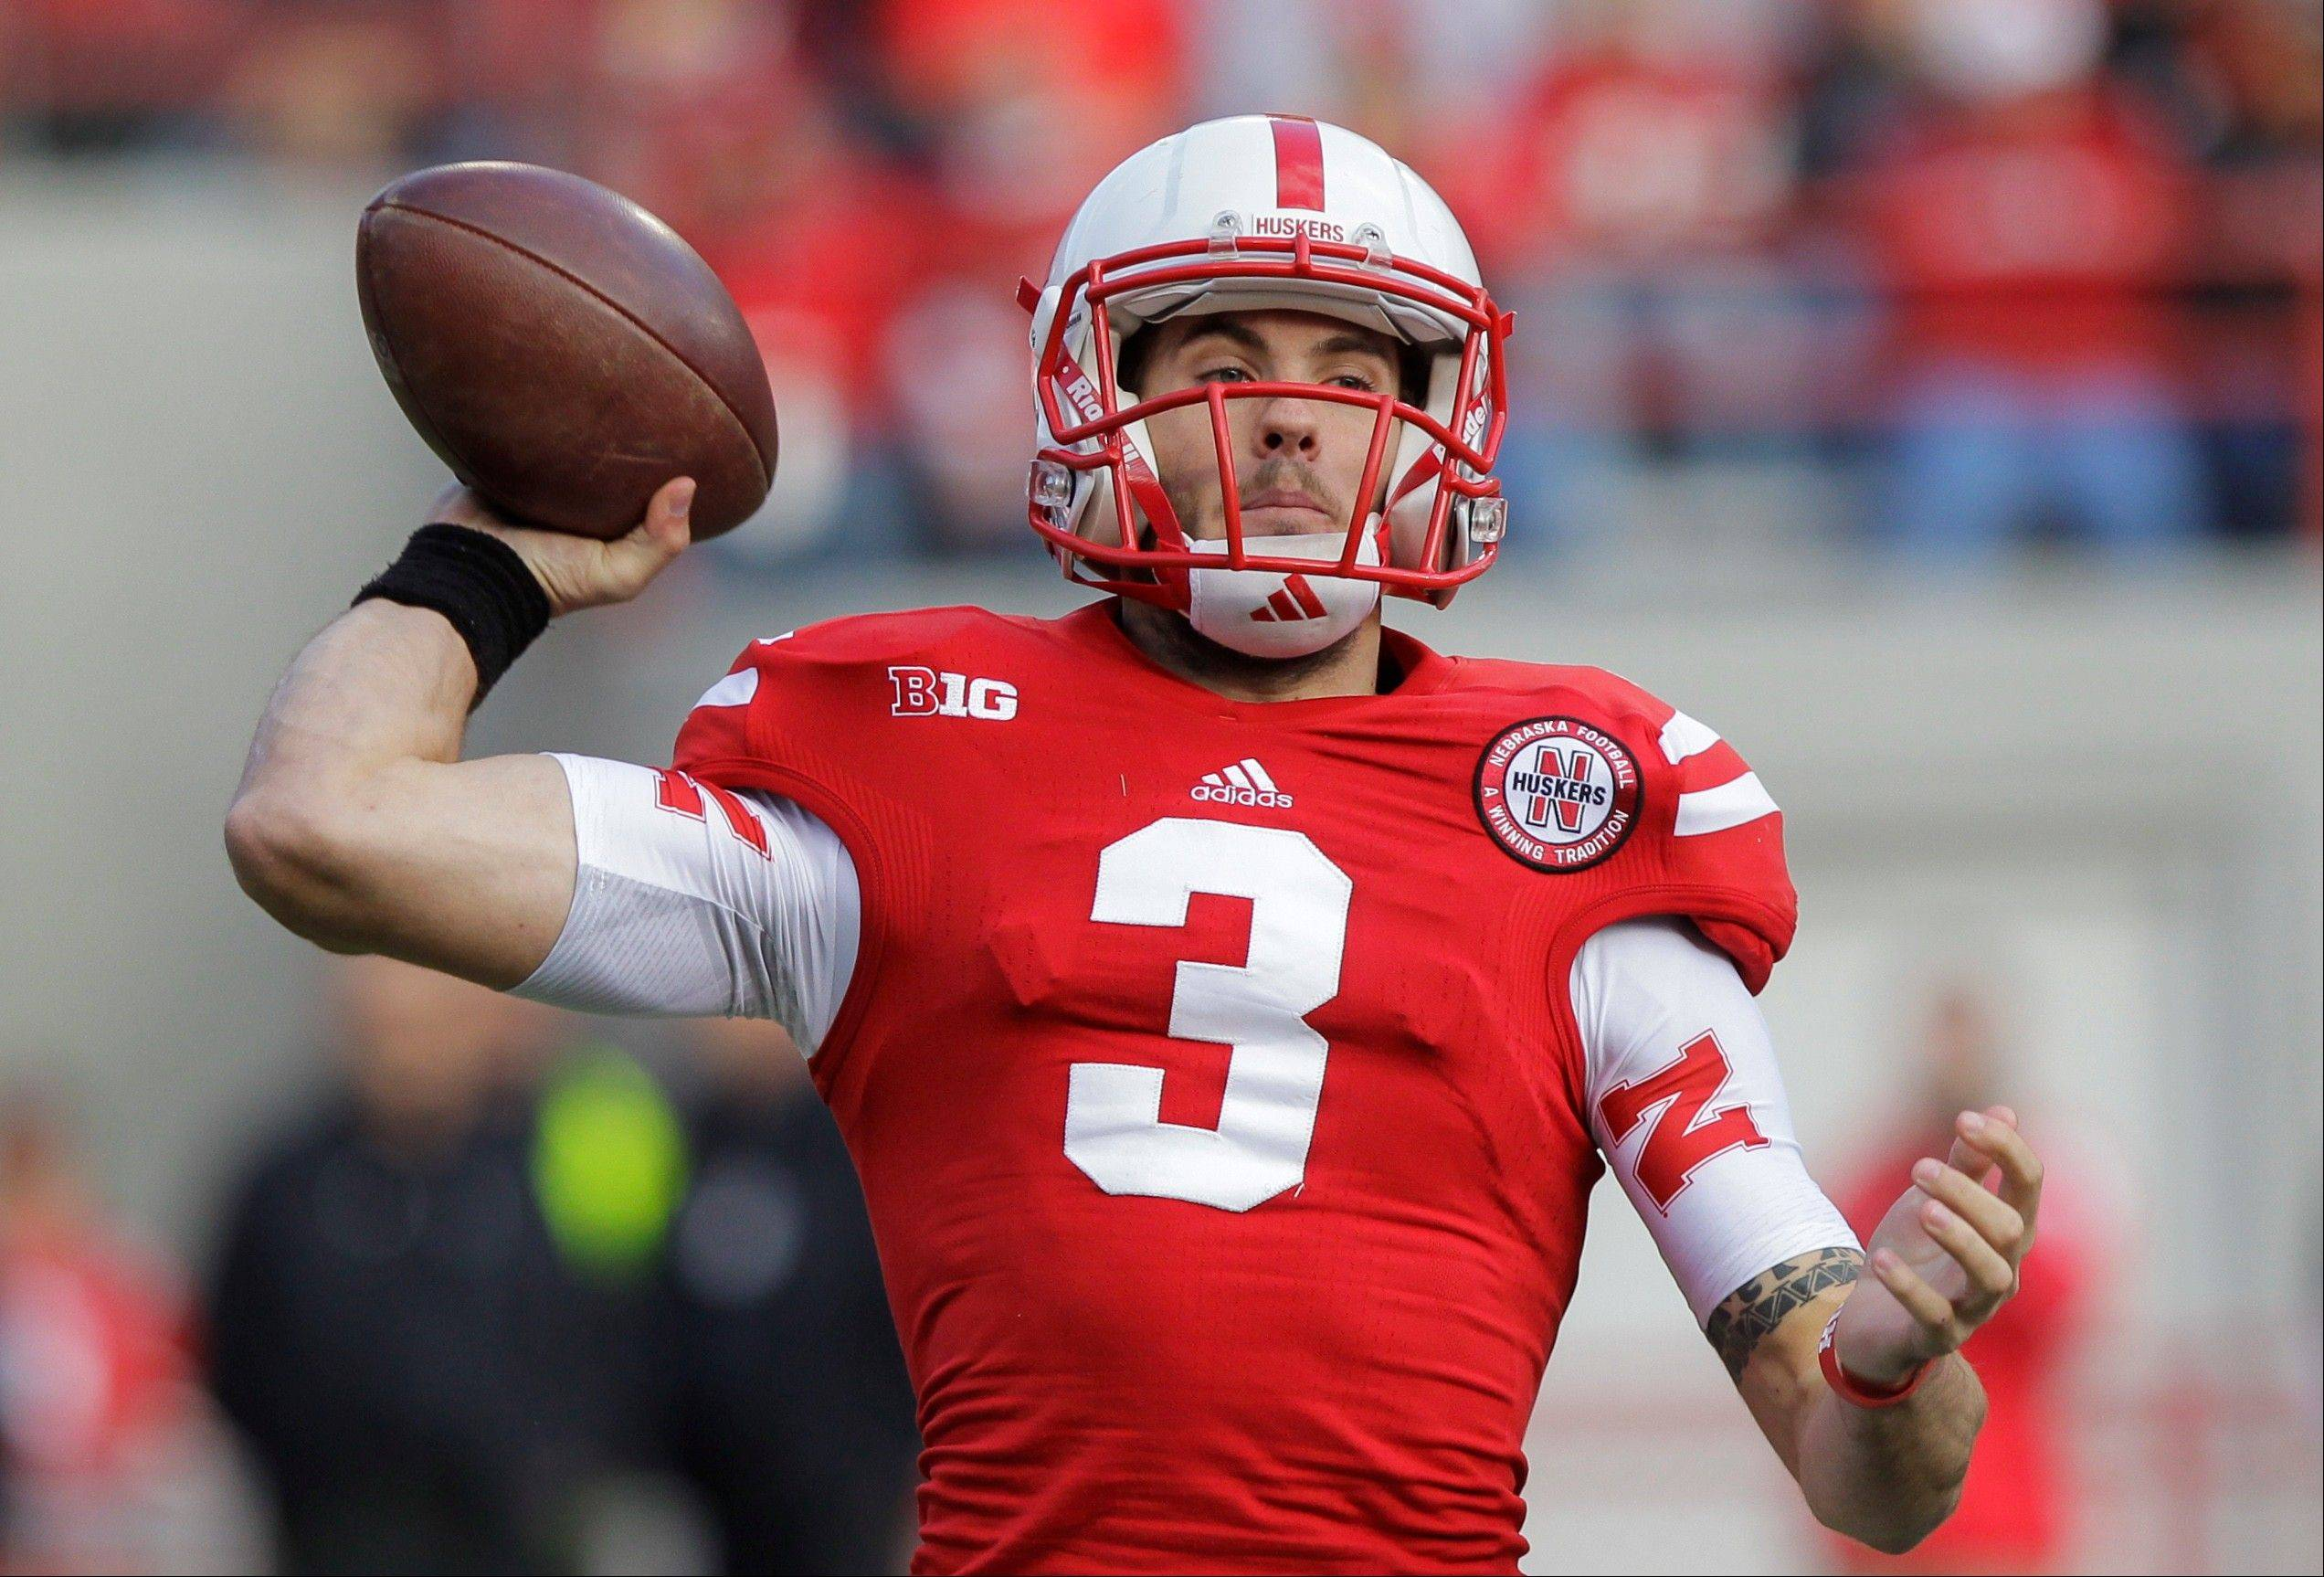 Nebraska quarterback Taylor Martinez throws in the first half of an NCAA college football game against Minnesota in Lincoln, Neb., Saturday, Nov. 17, 2012. (AP Photo/Nati Harnik)